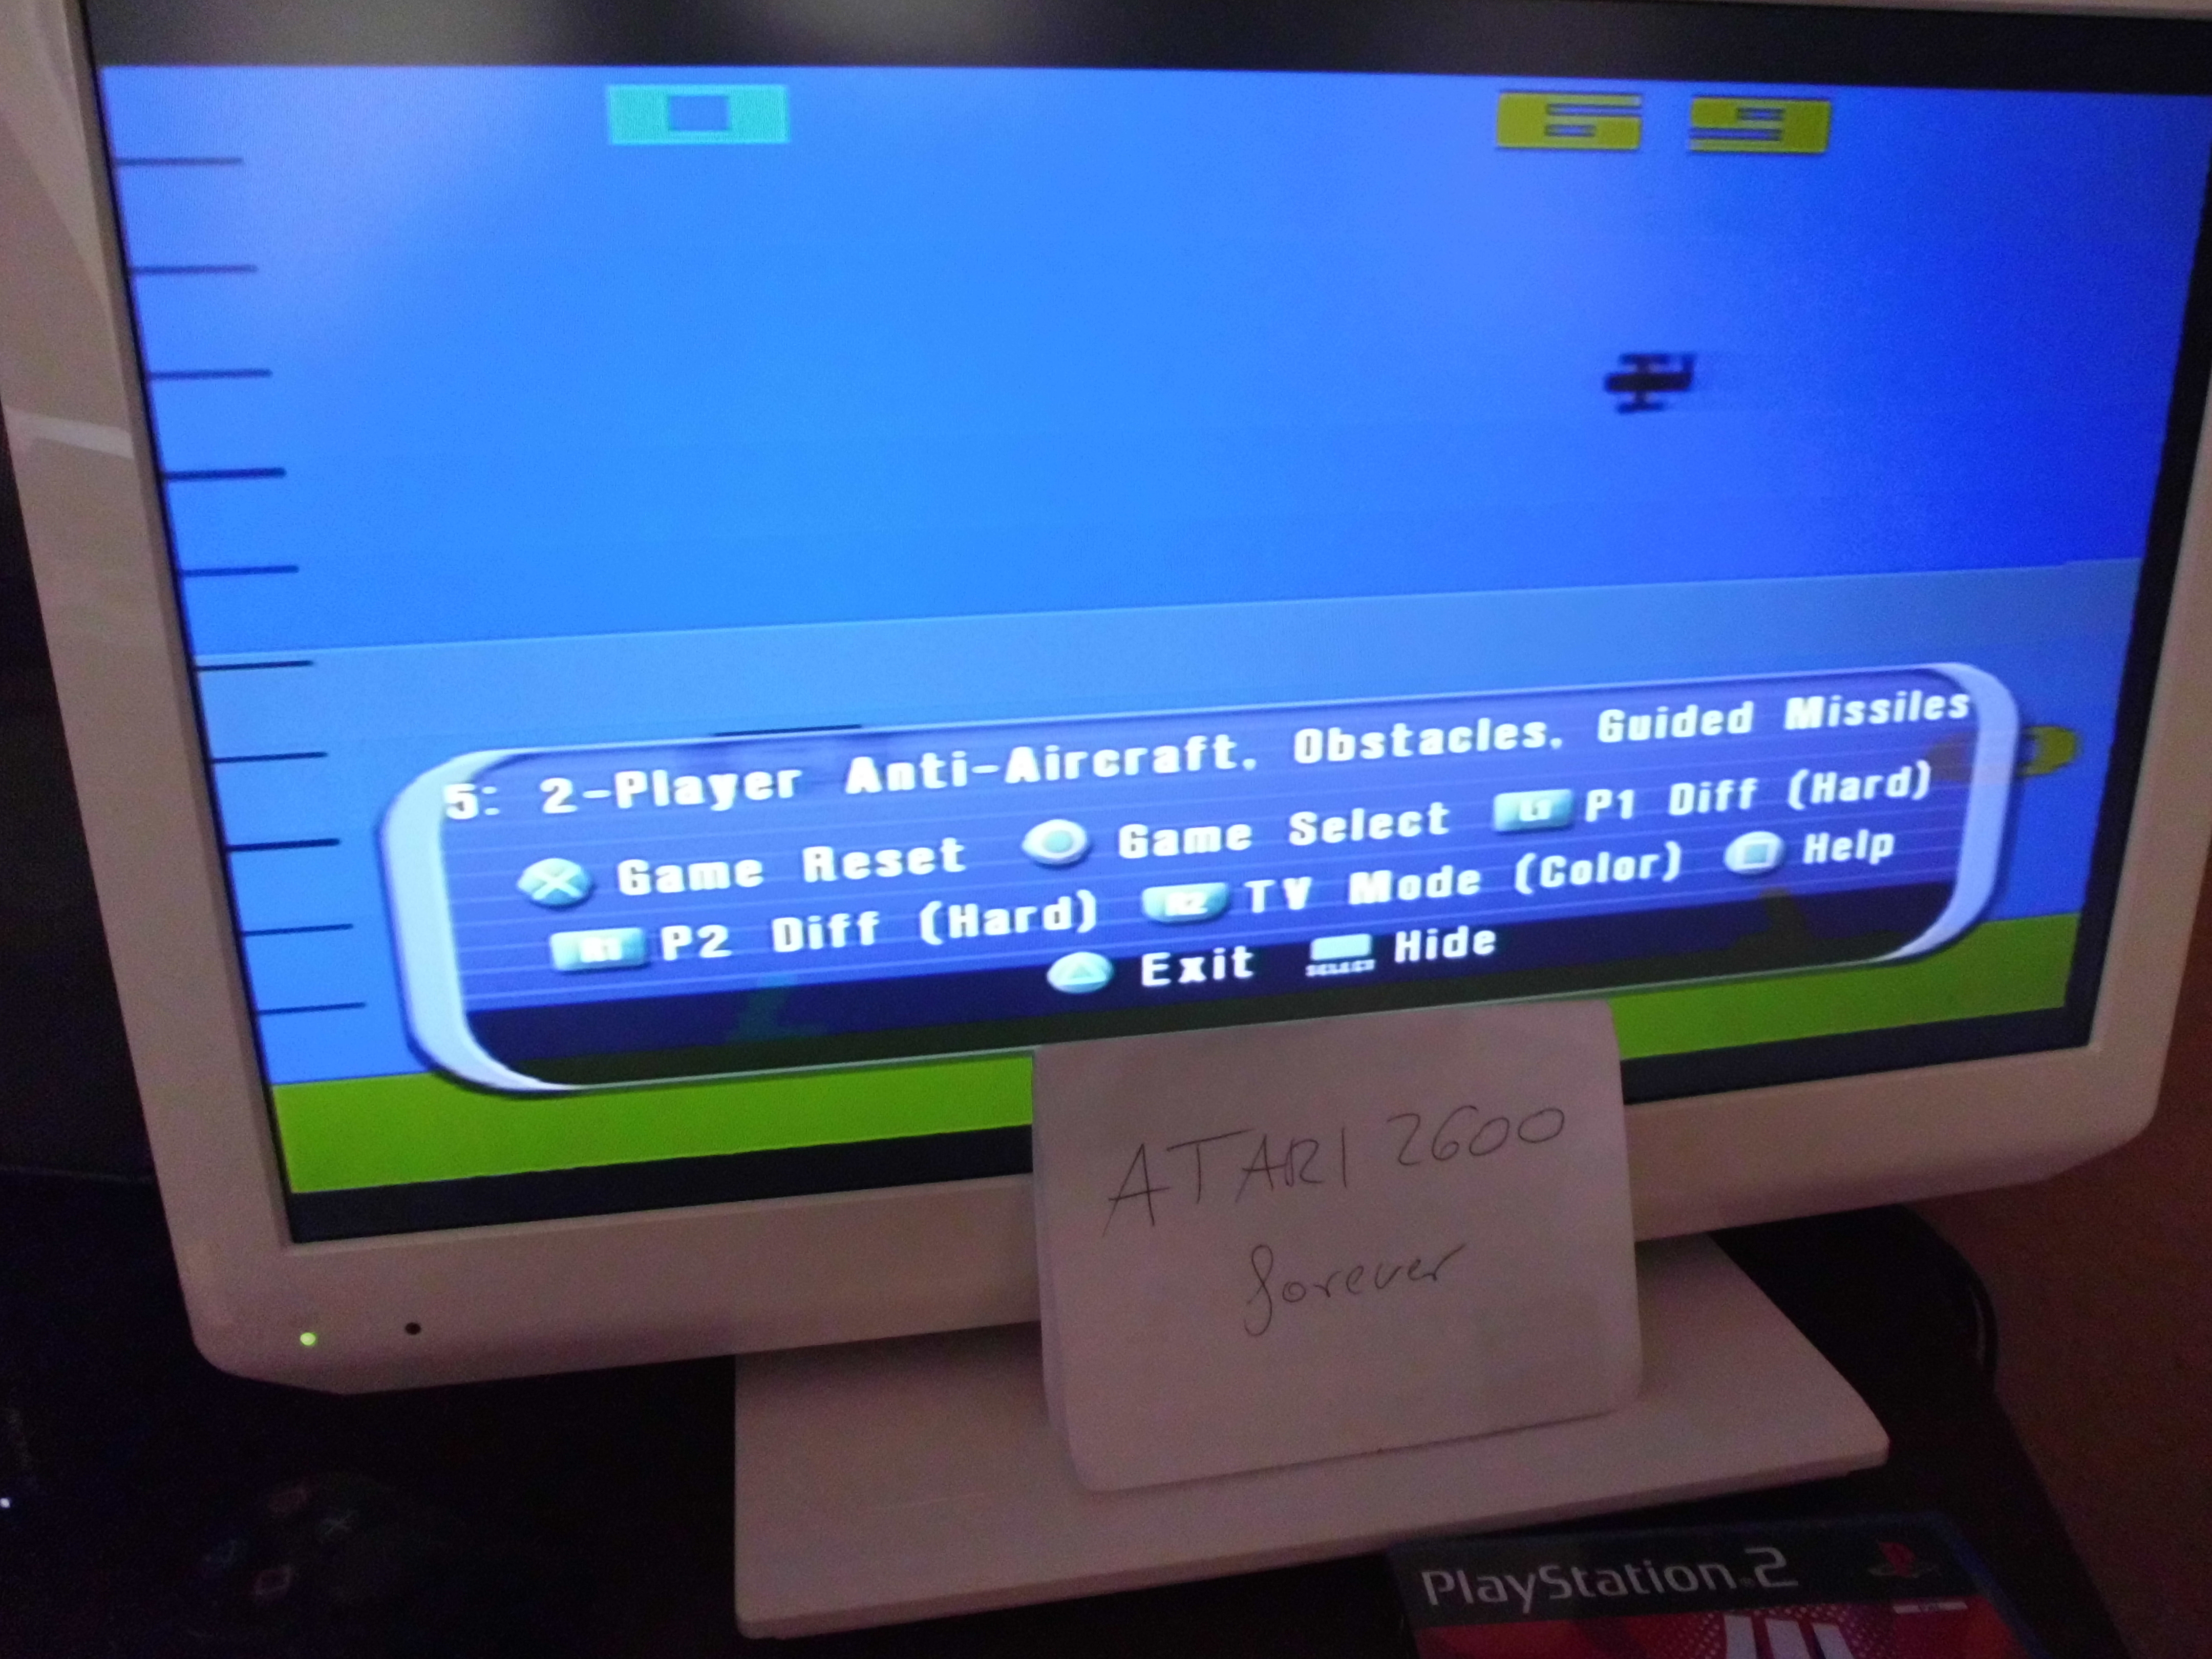 atari2600forever: Atari Anthology: Air-Sea Battle [Game 5A] (Playstation 2) 69 points on 2018-03-29 03:42:48